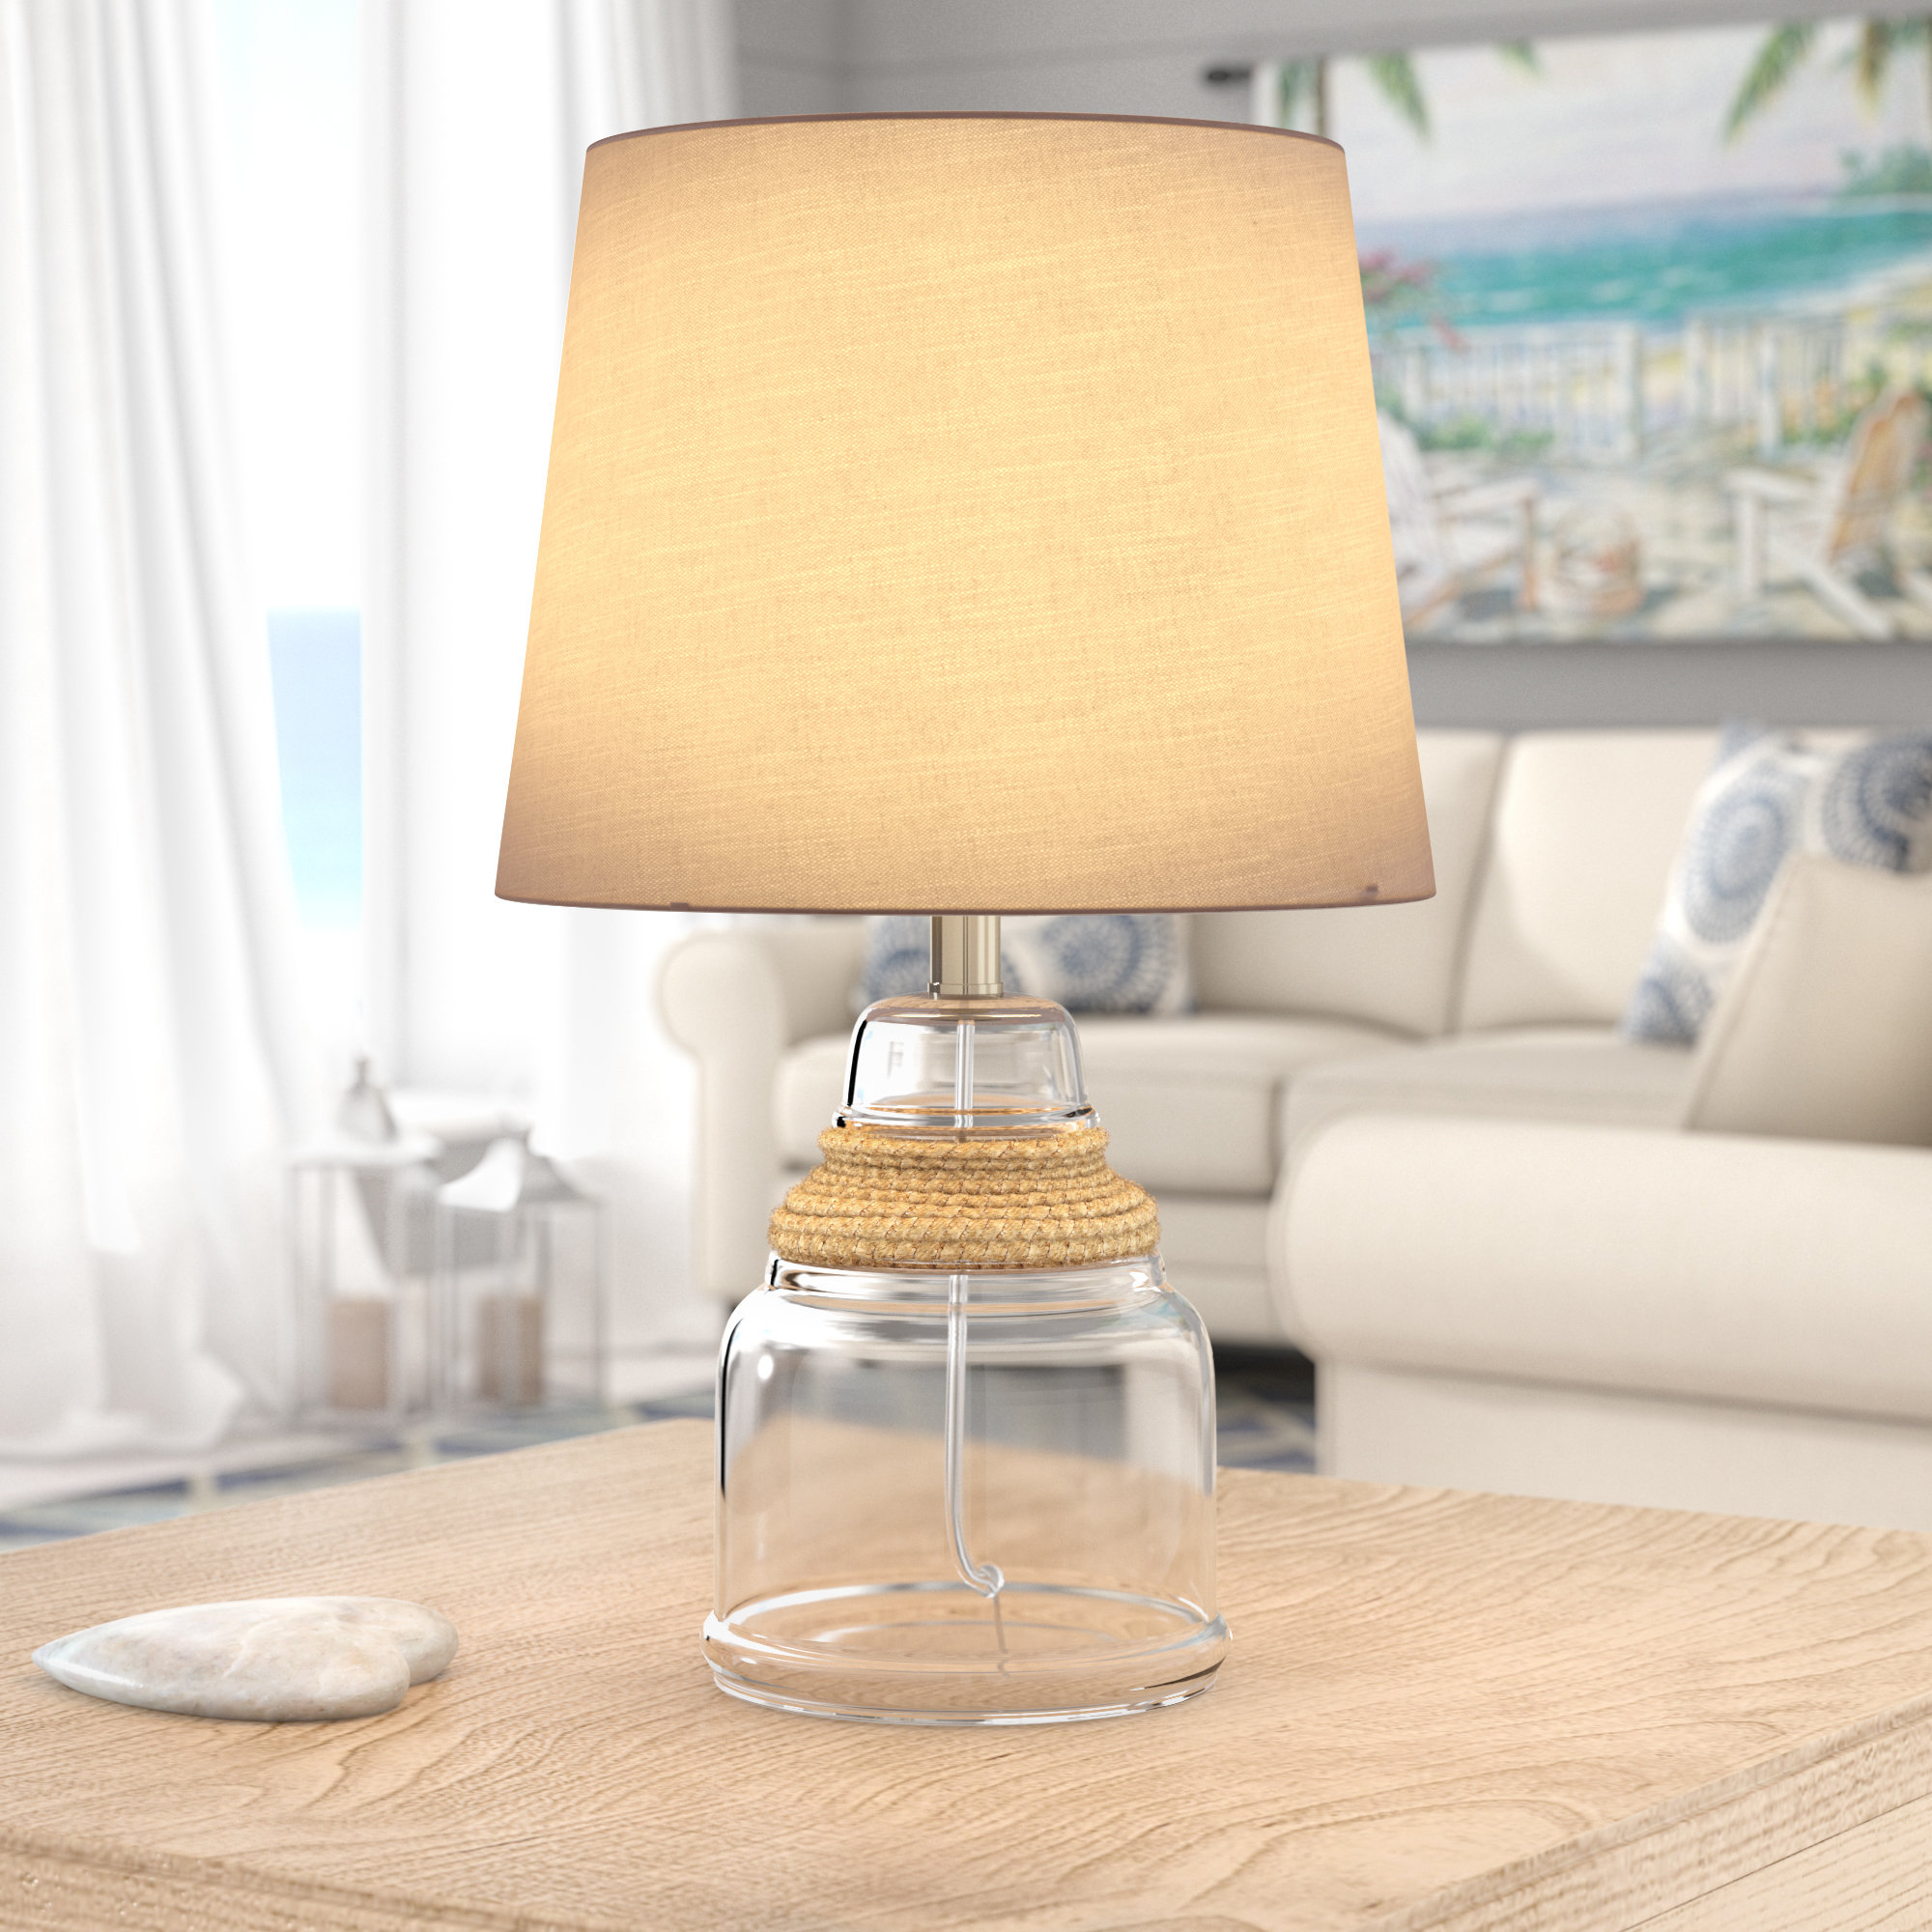 dalley rope table lamp reviews birch lane bedford jute accent chair patio set target cocktail battery operated light fixtures vintage wood threshold windham pier dining room